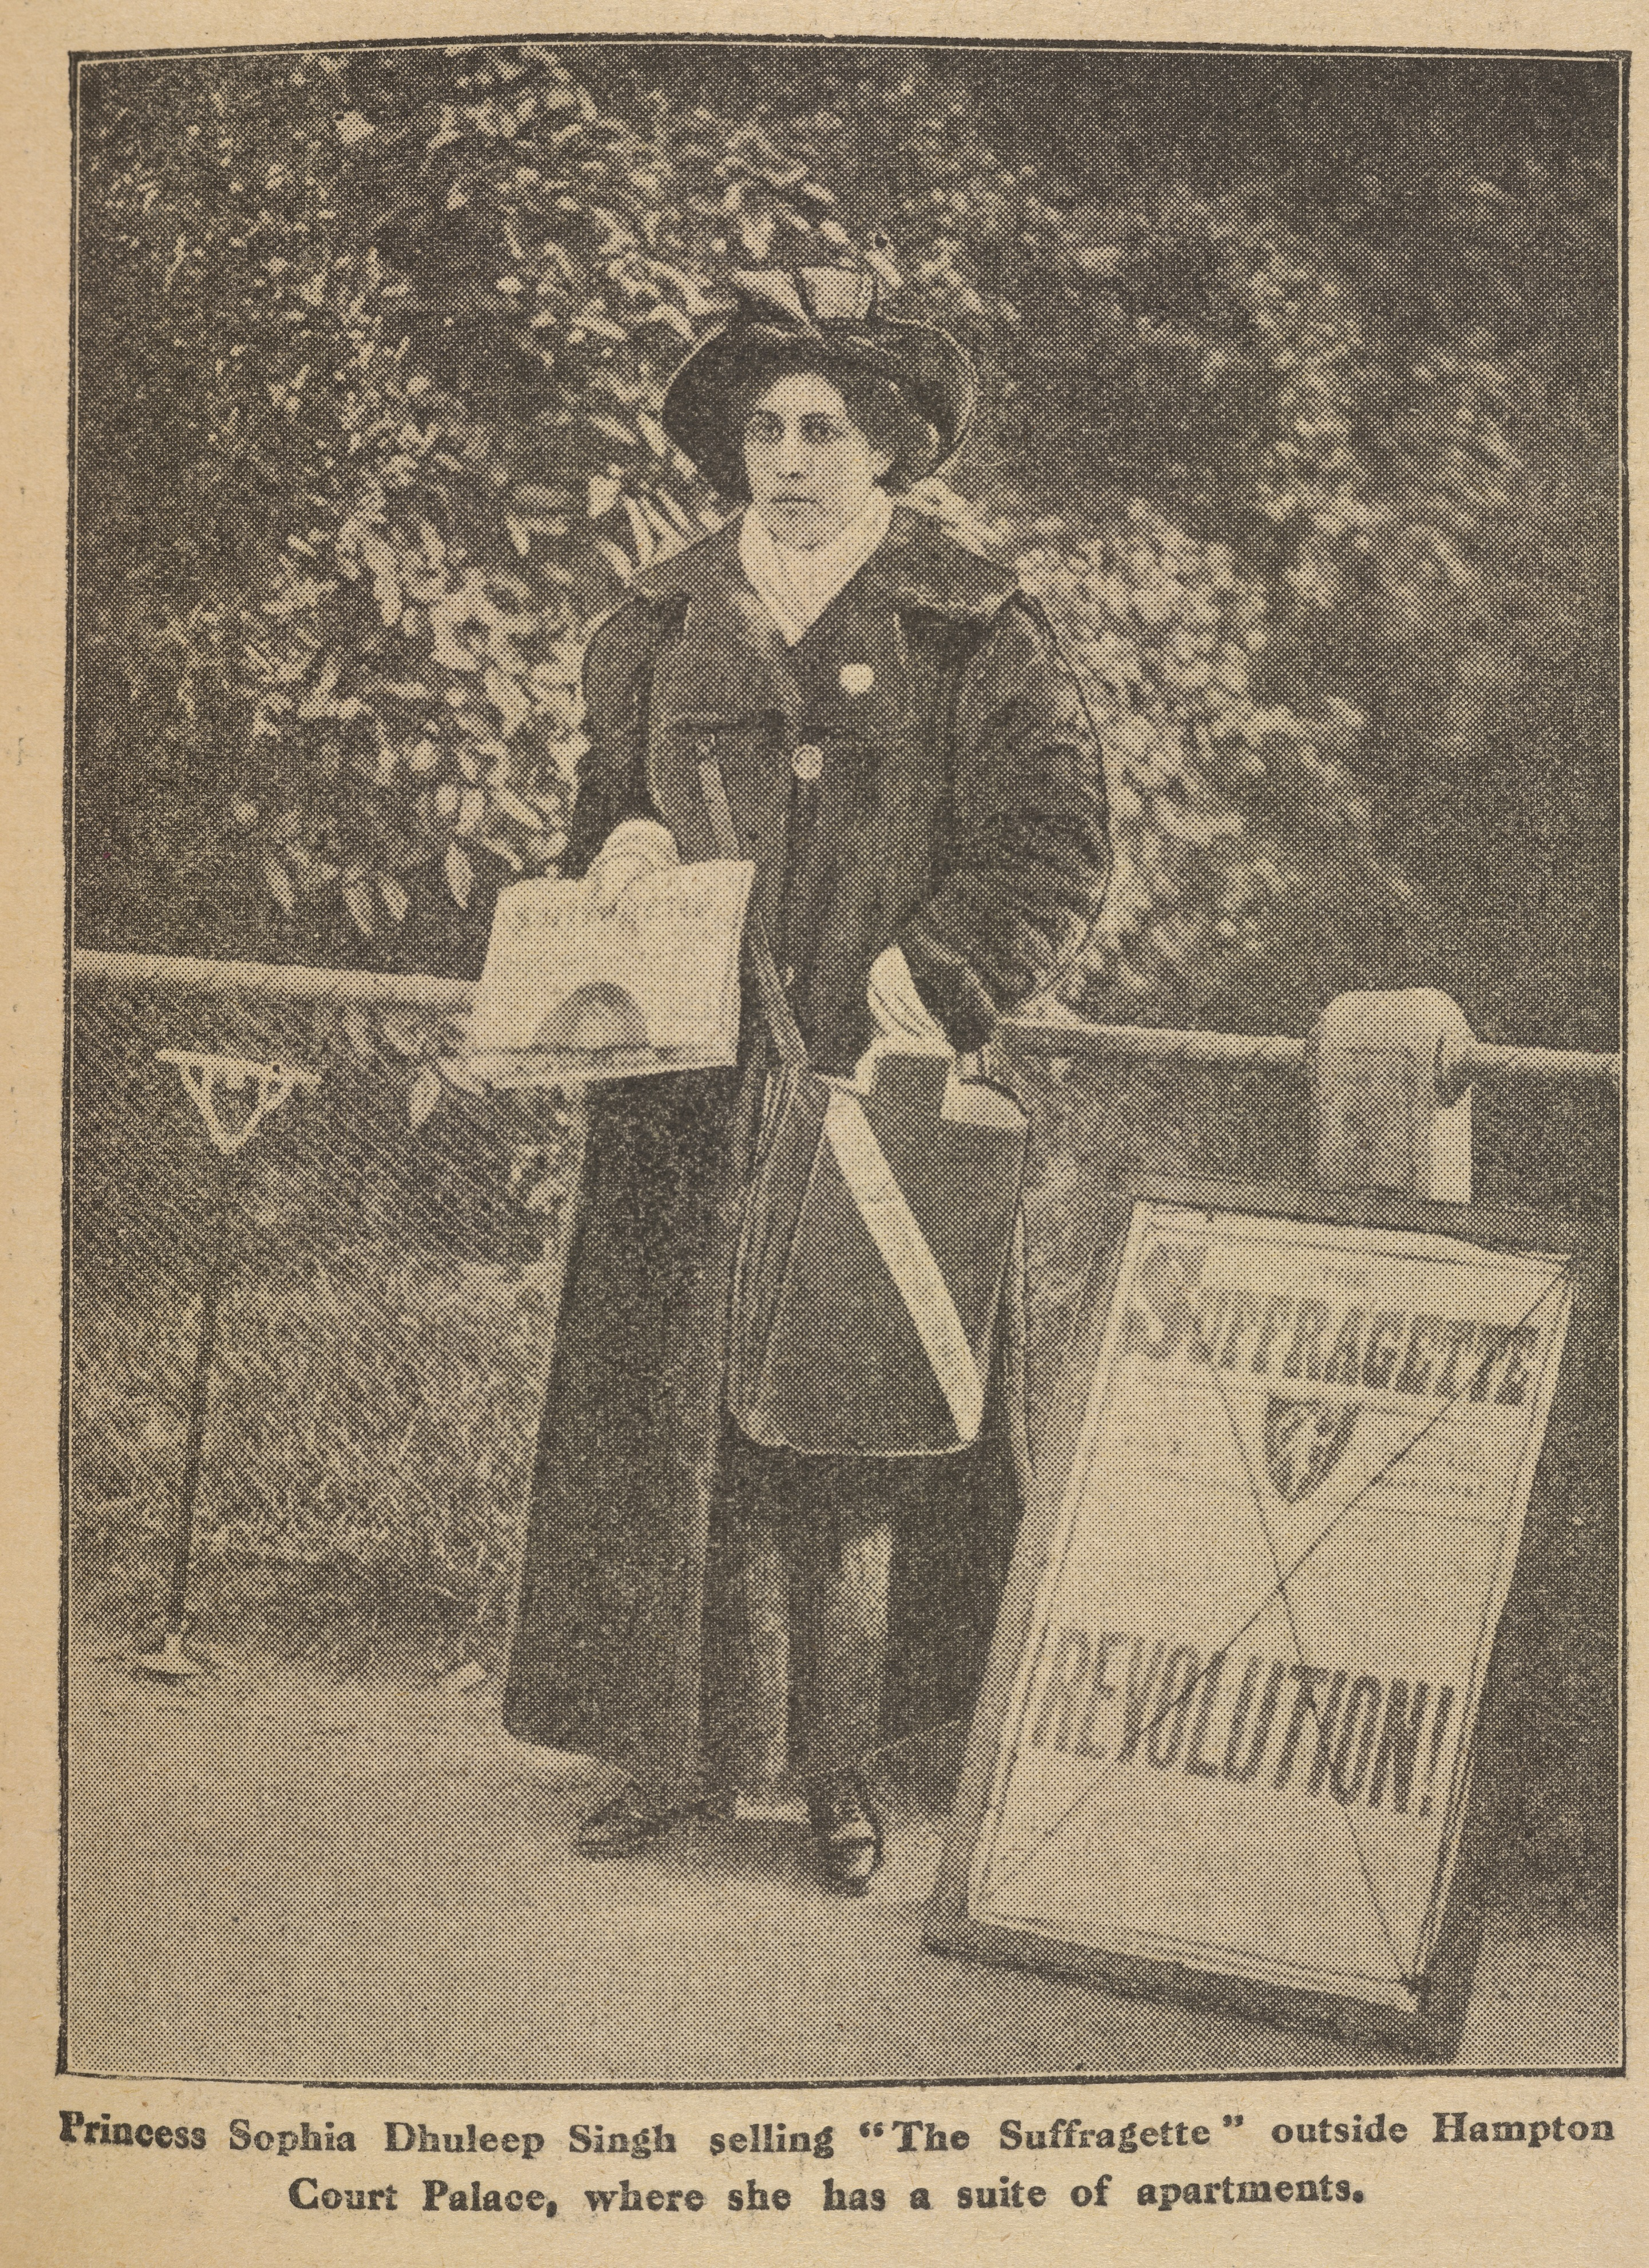 Sophia Duleep Singh (The Suffragette, 18 April 1913). This photograph shows Princess Sophia selling The Suffragette newspaper outside Hampton Court Palace, where she lived in an apartment. Image credit: Courtesy of the British Library Board